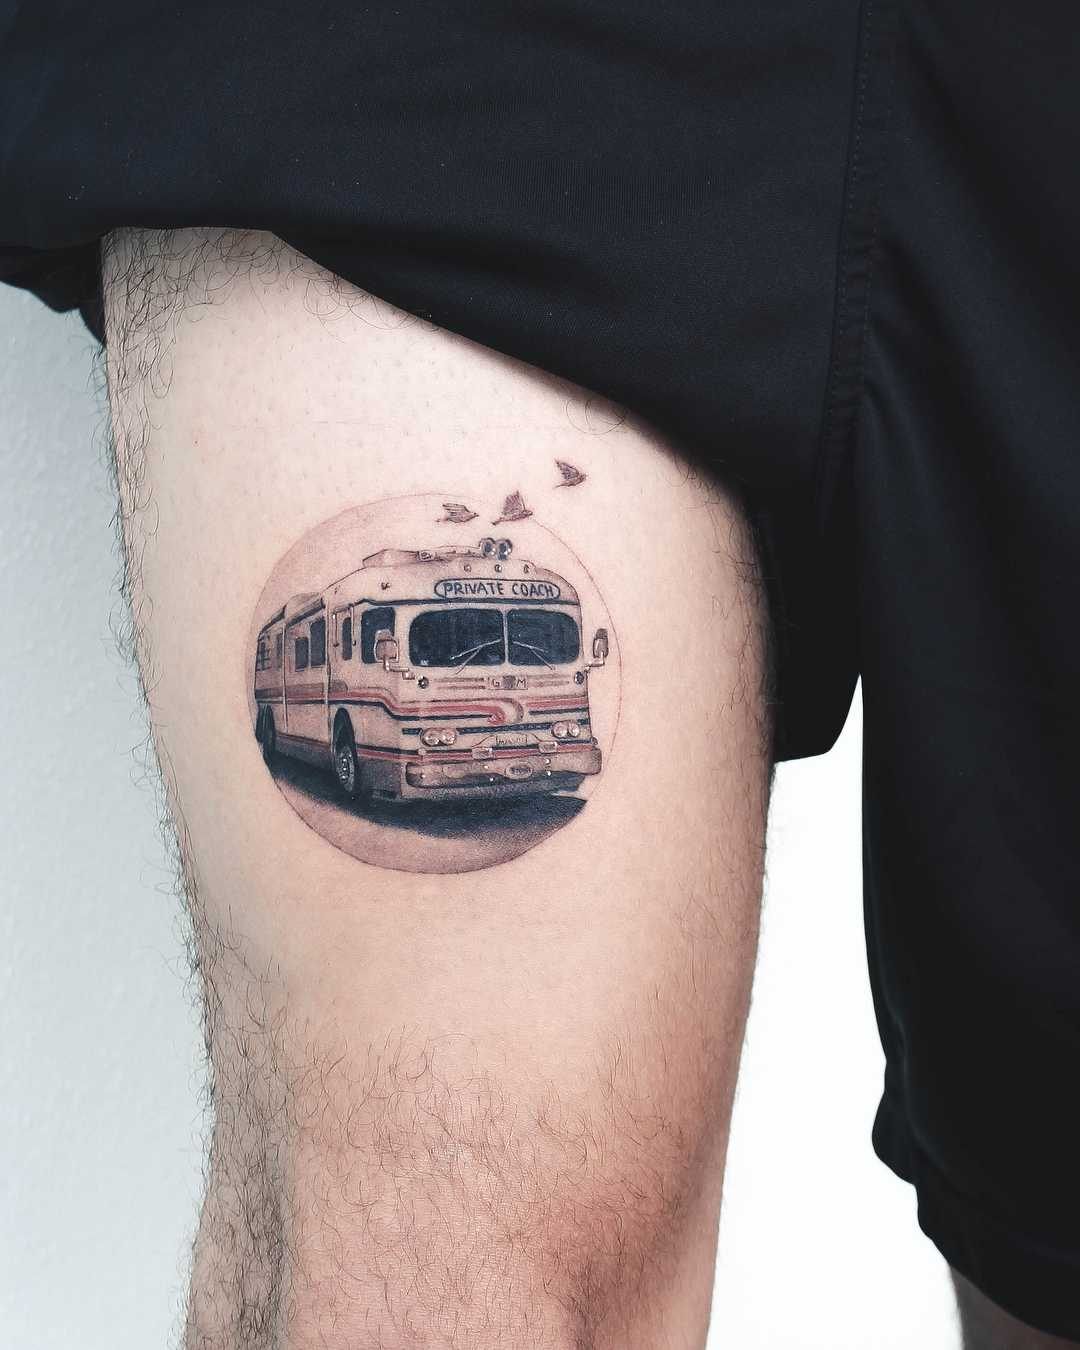 Bus tattoo on the thigh